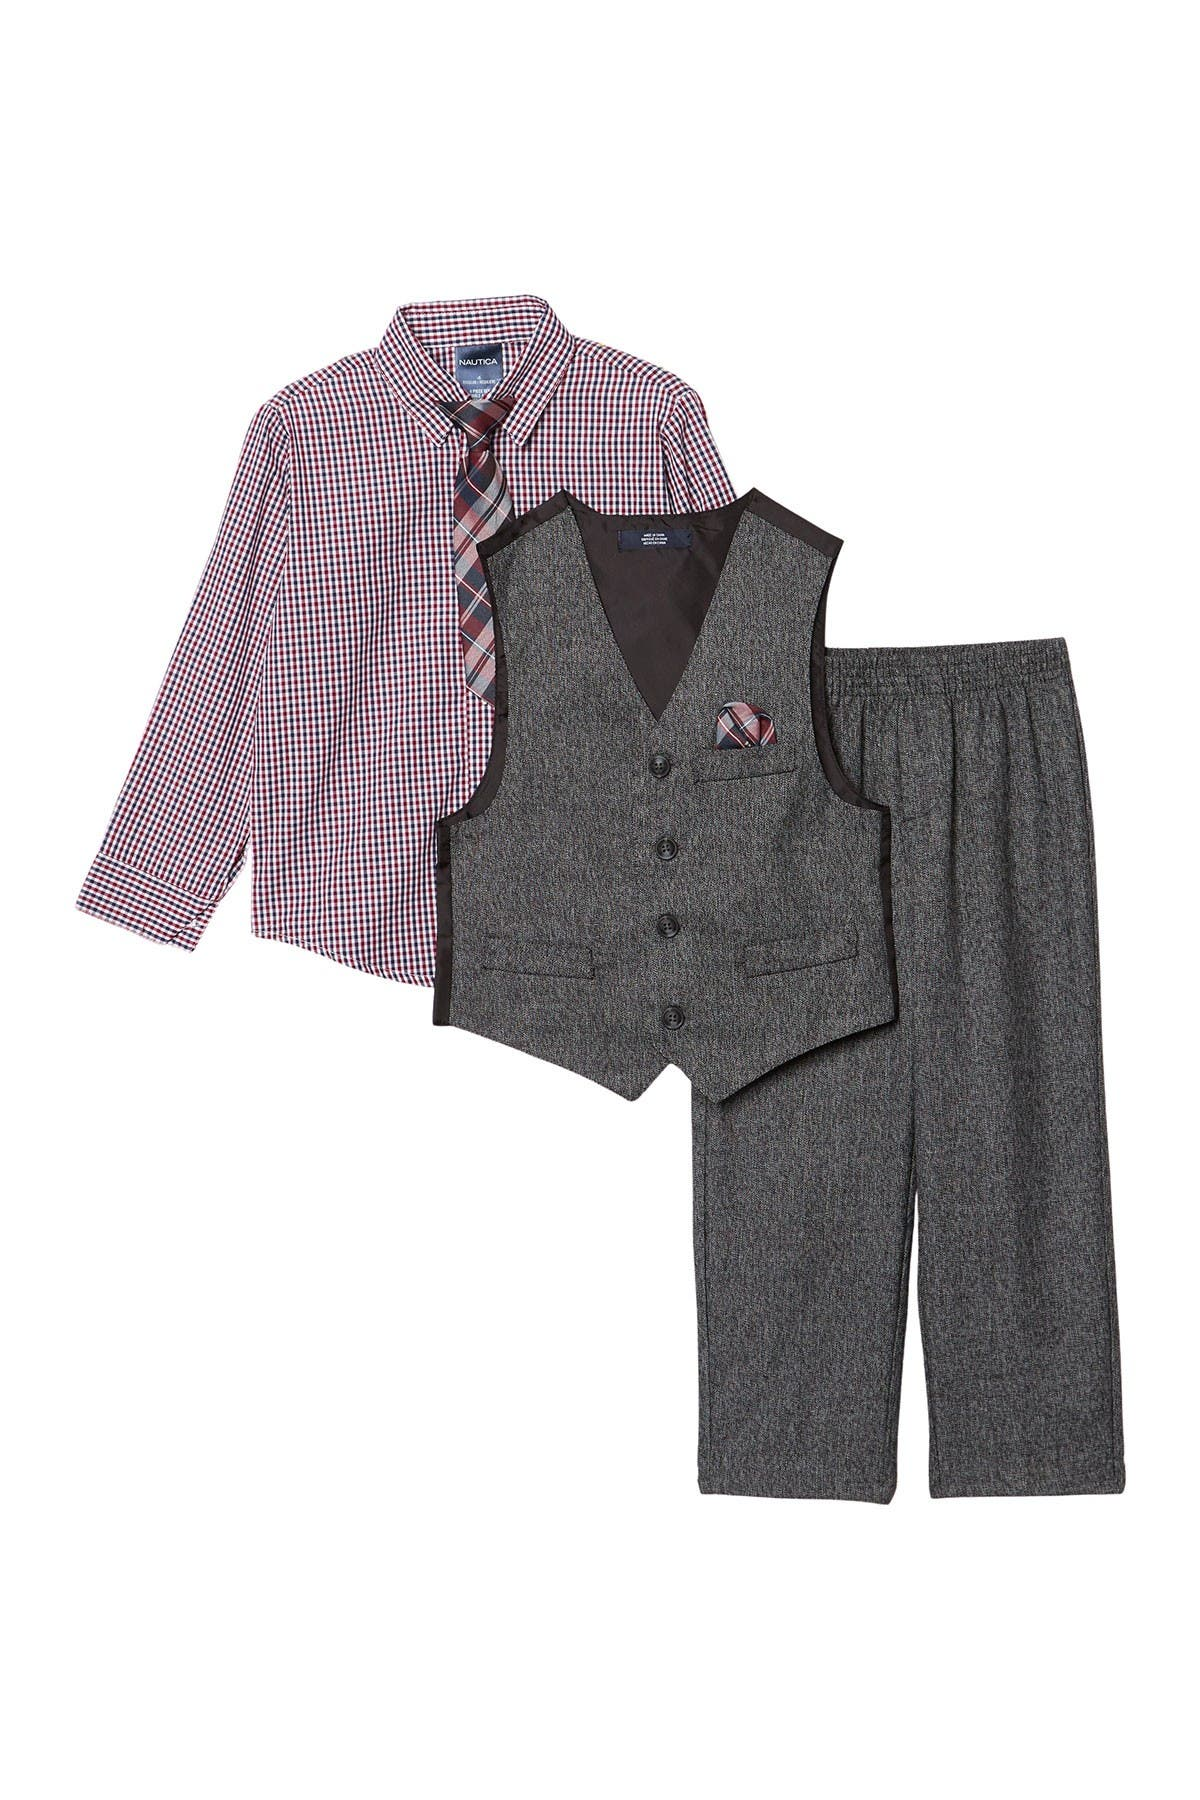 Image of Nautica Holiday Twist Vest Set